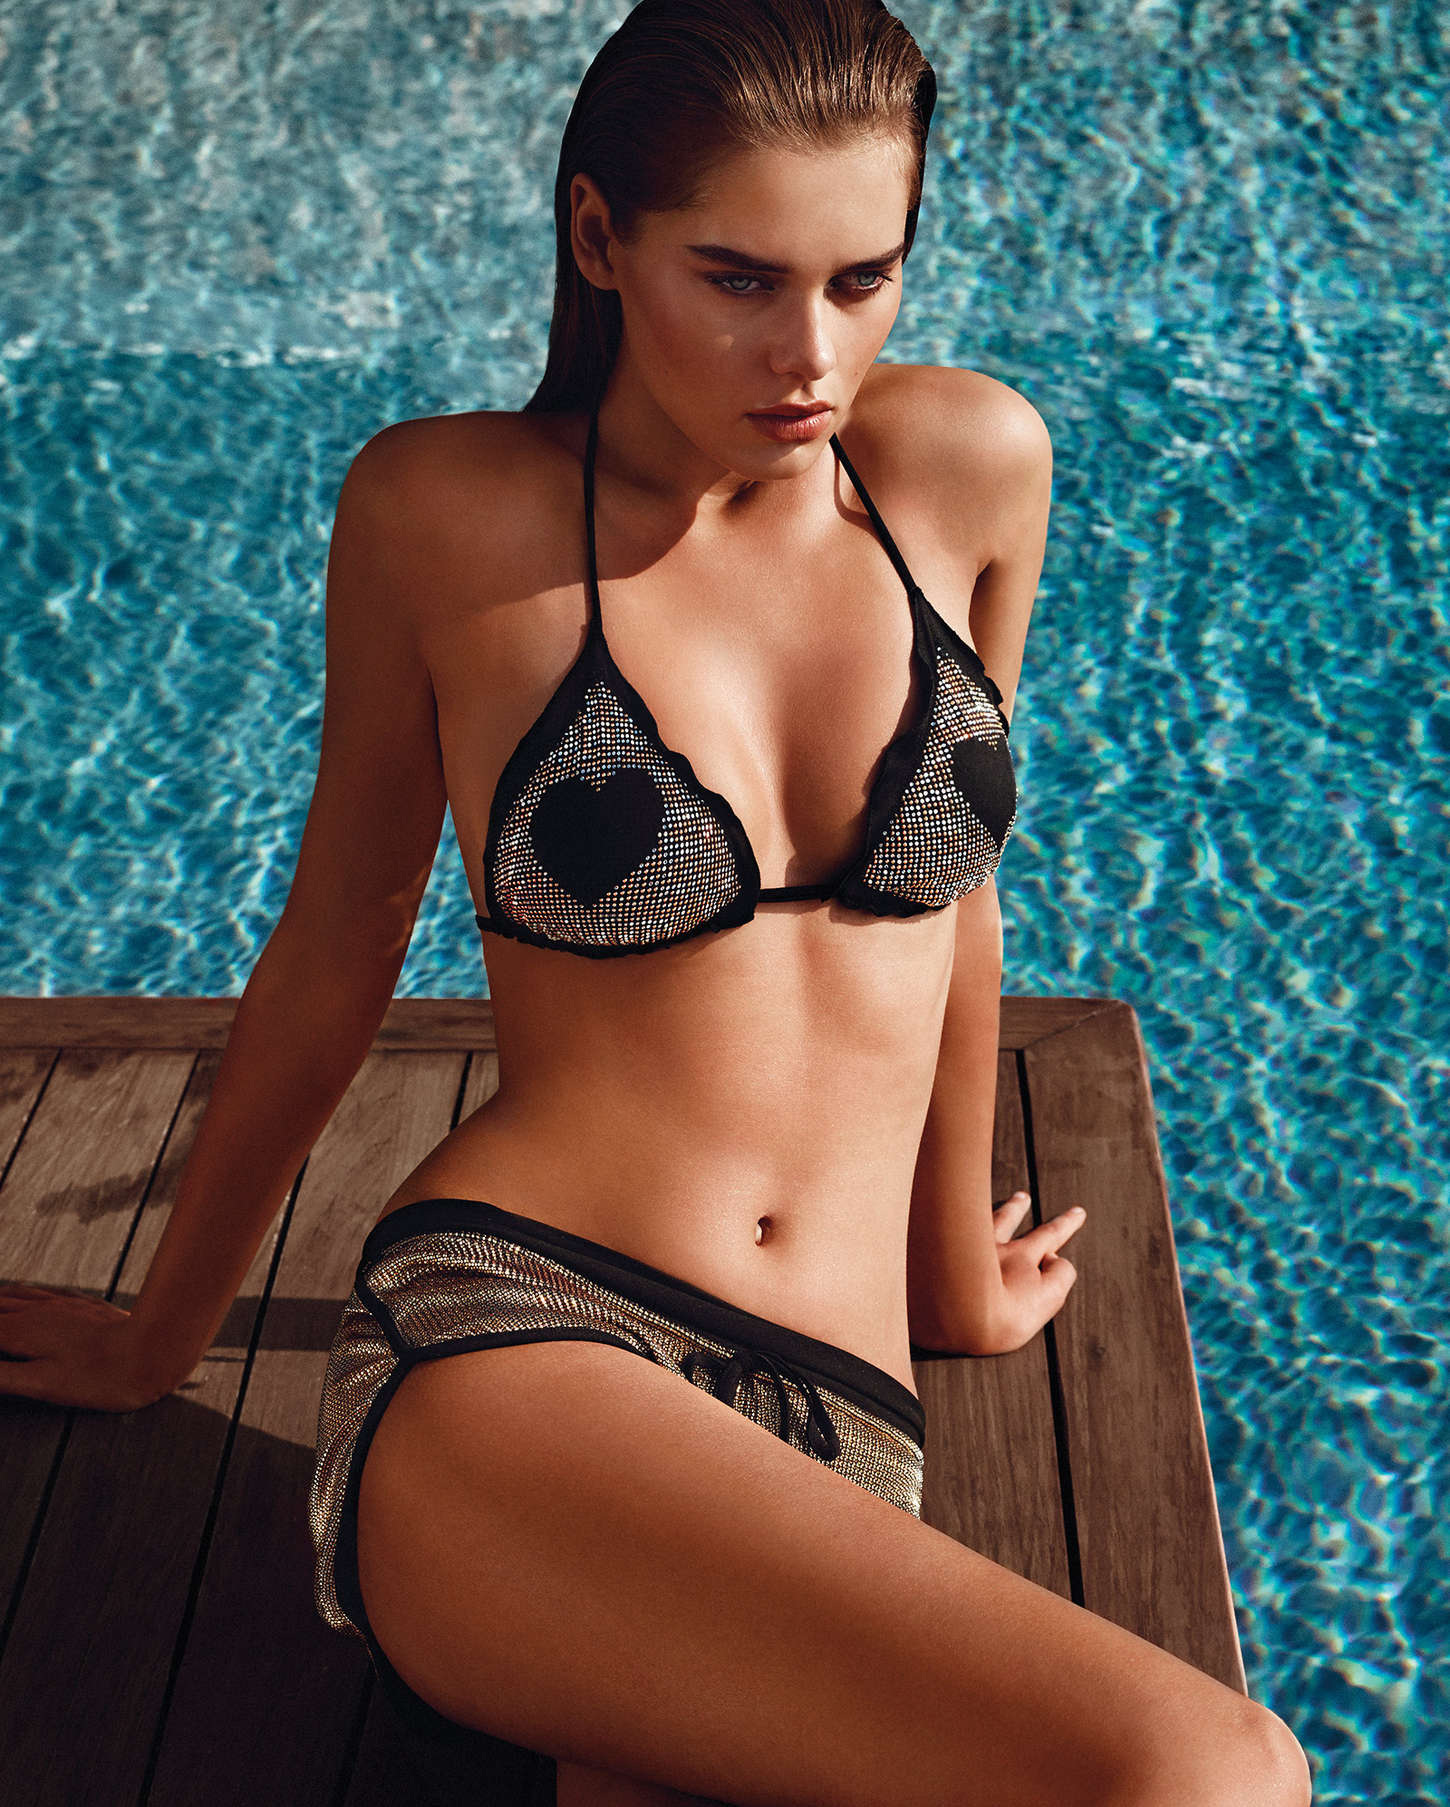 Twin Set Costumi Da Bagno 2017 Solveig Mork Hansen Twin Set Swimwear Photoshoot Spring